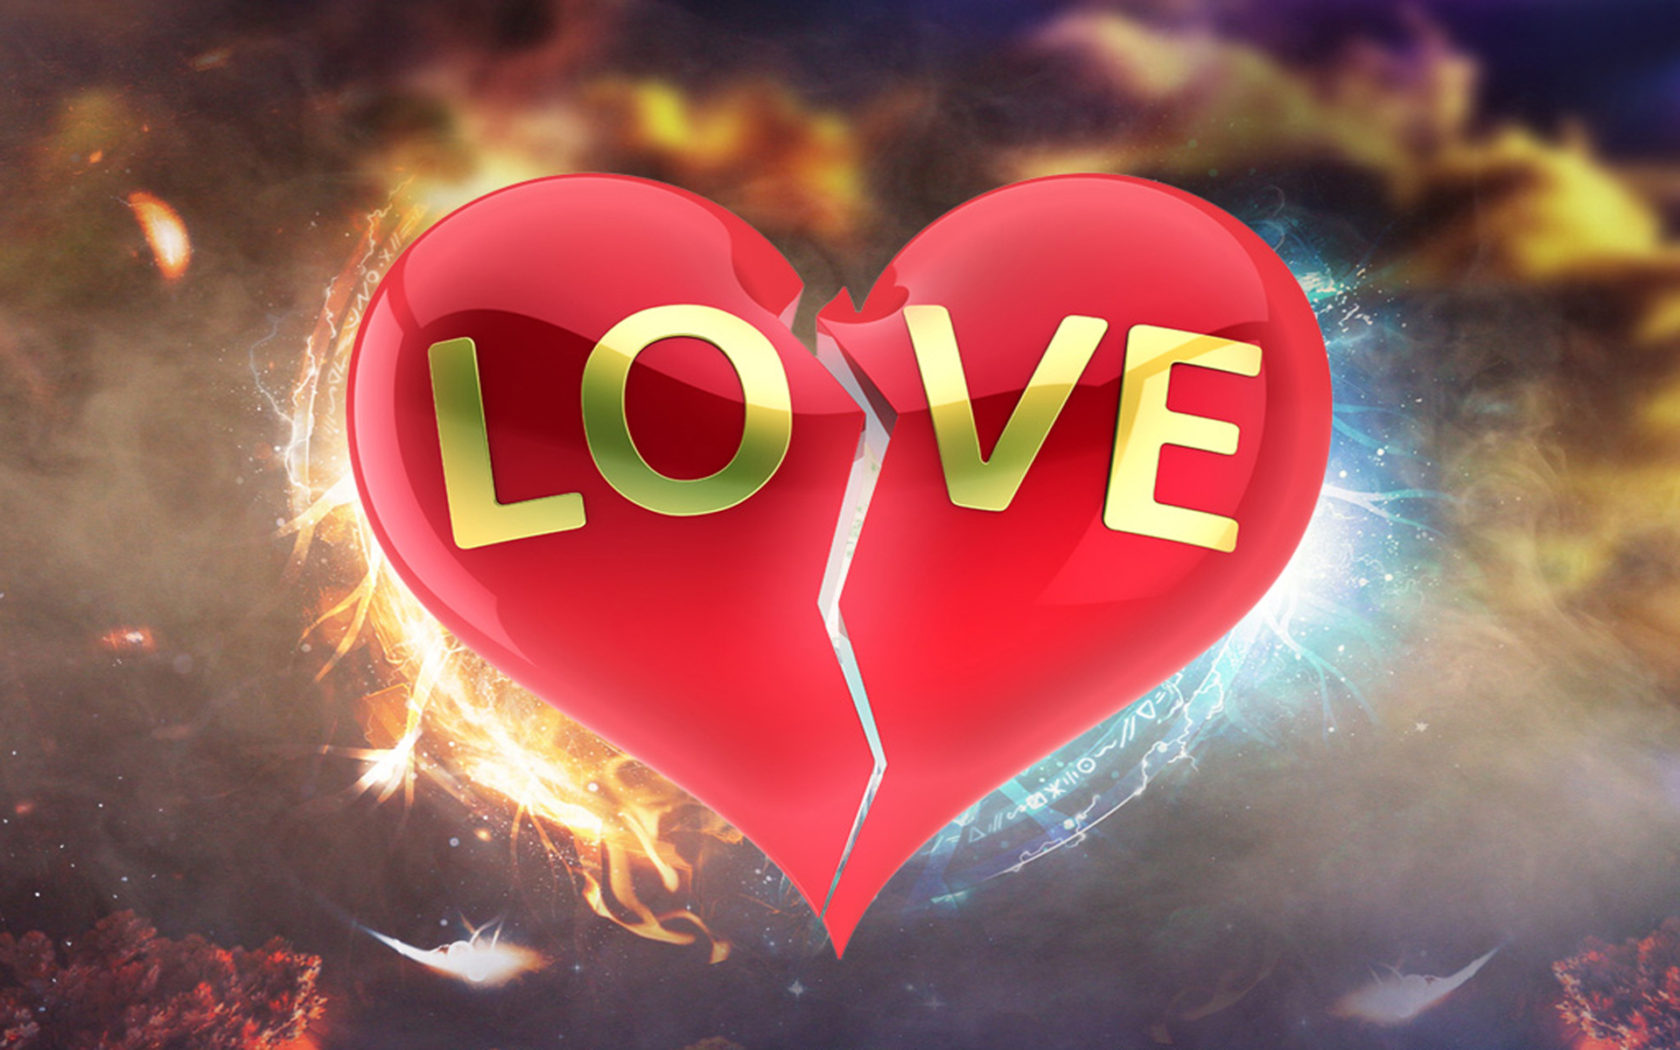 Couple Wallpaper Wid Quotes Love 367a Wallpapers13 Com